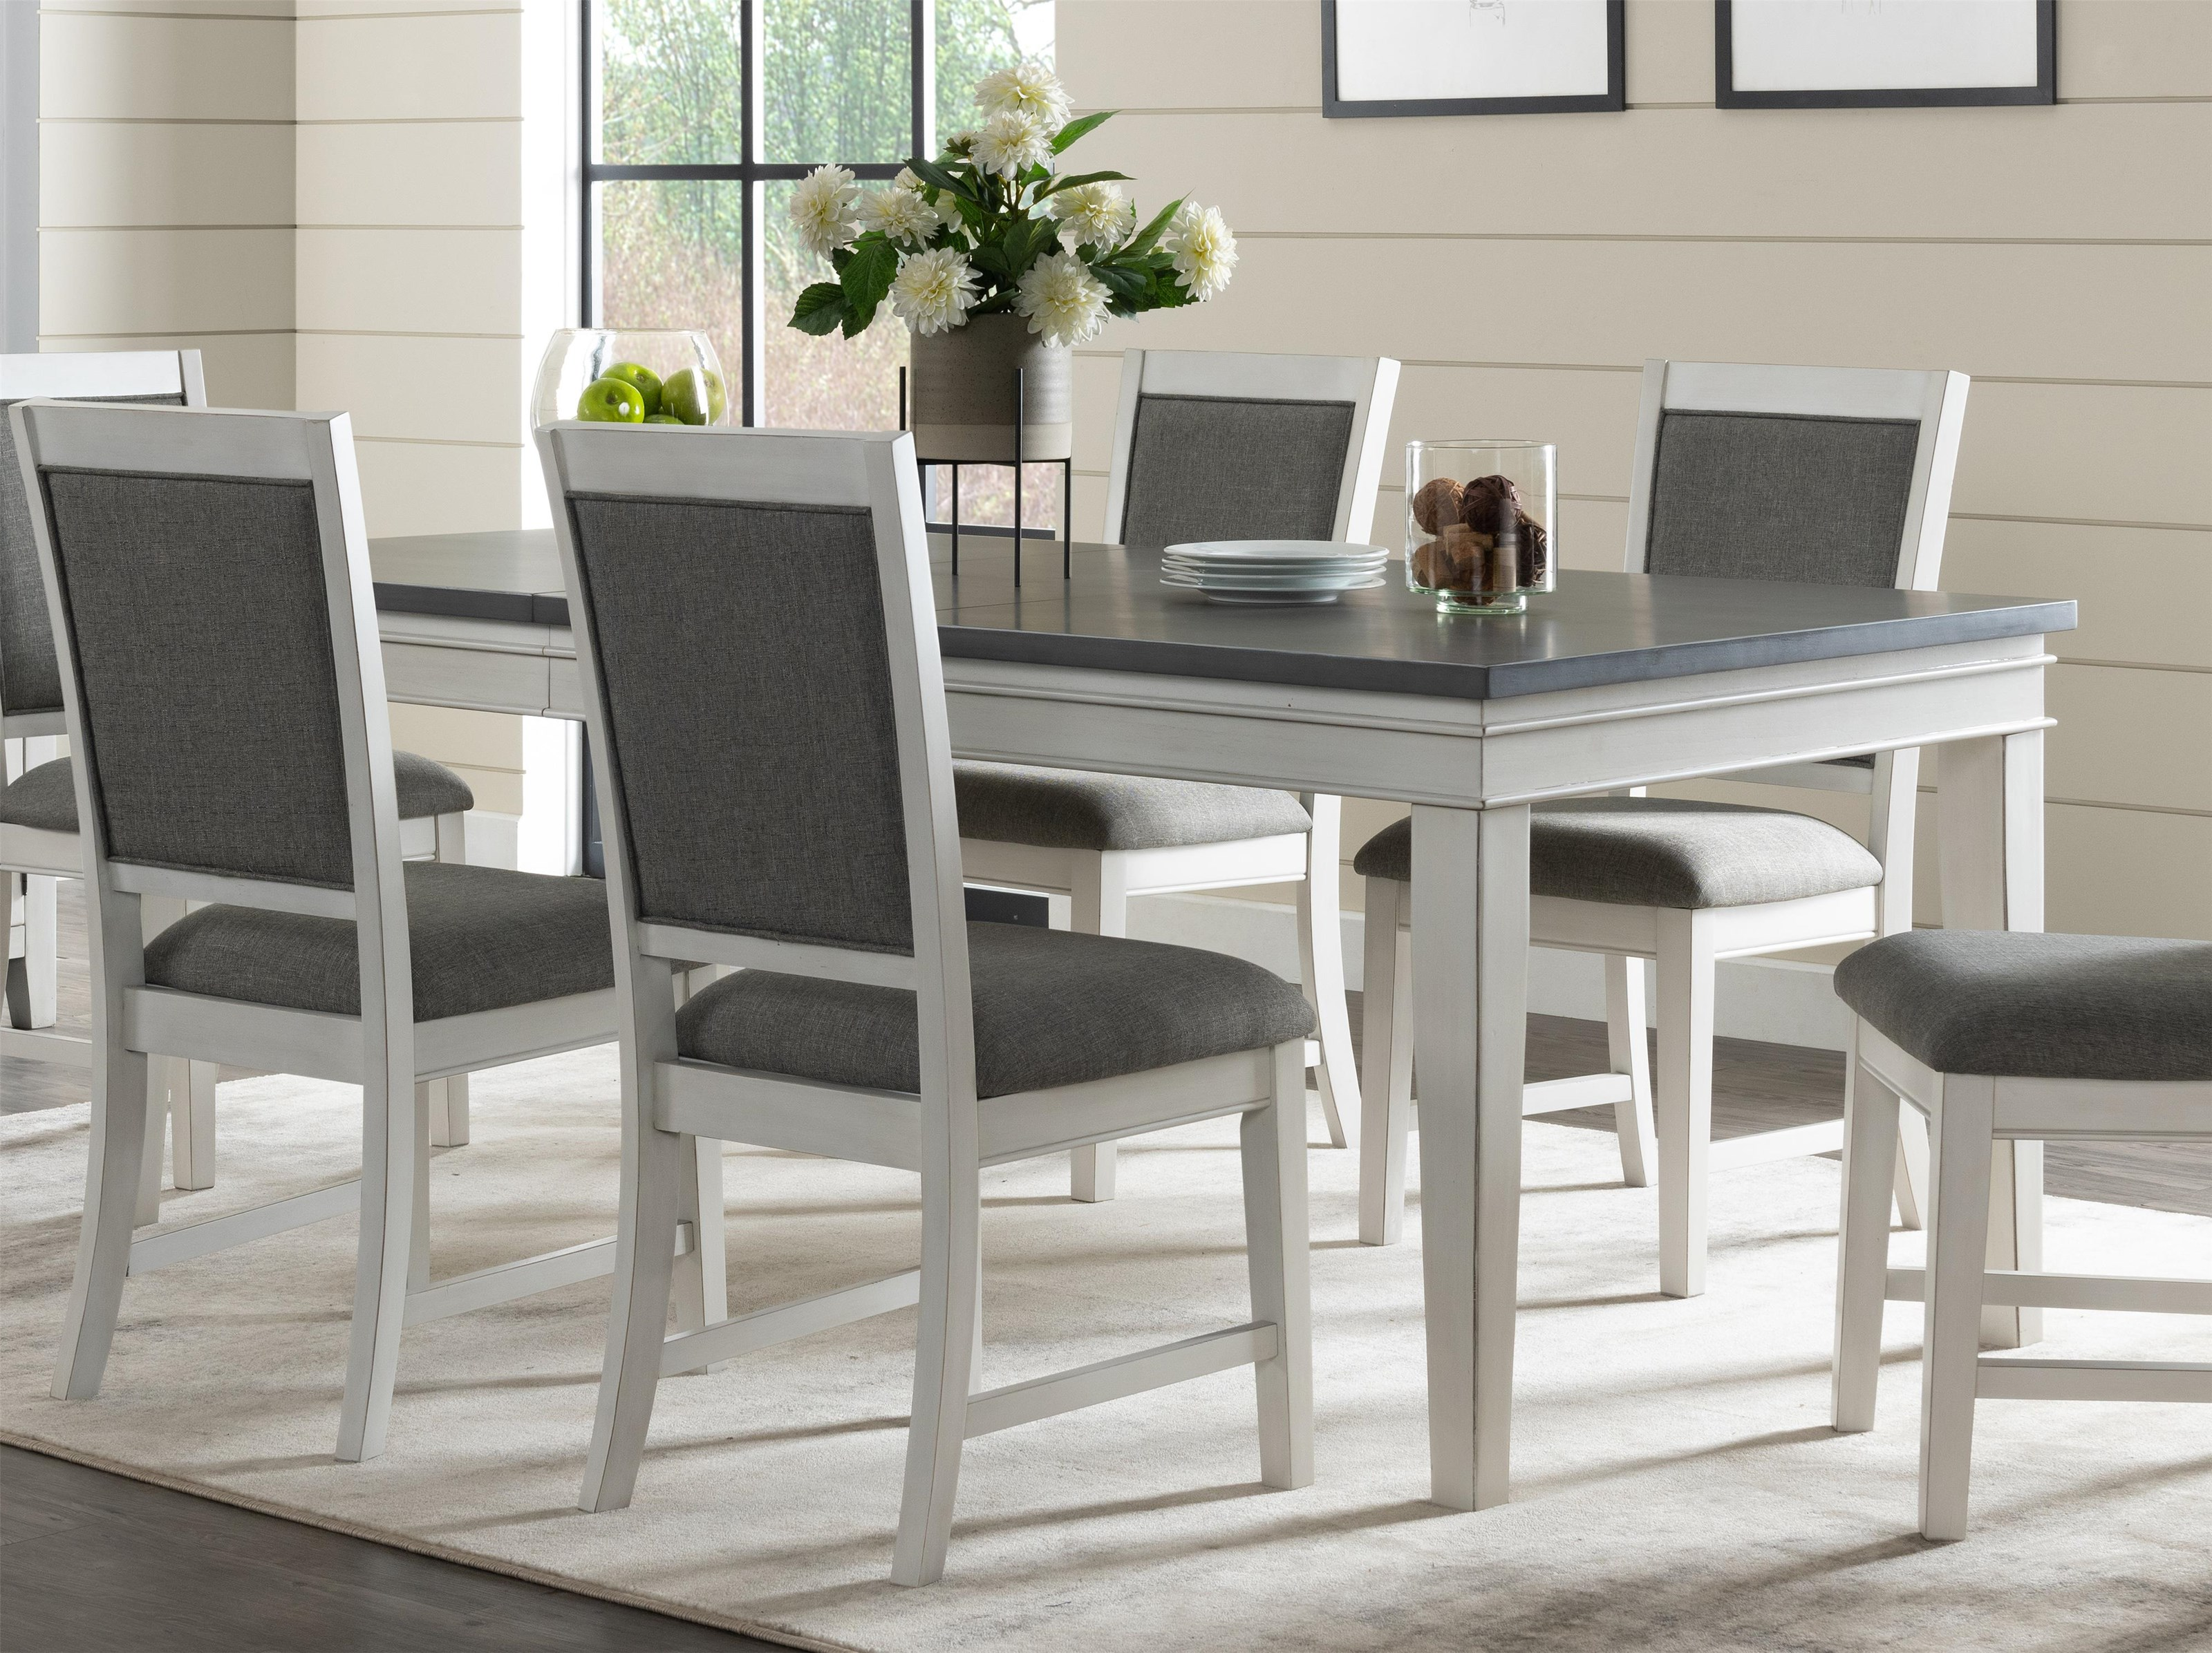 Two-Tone Dining Table